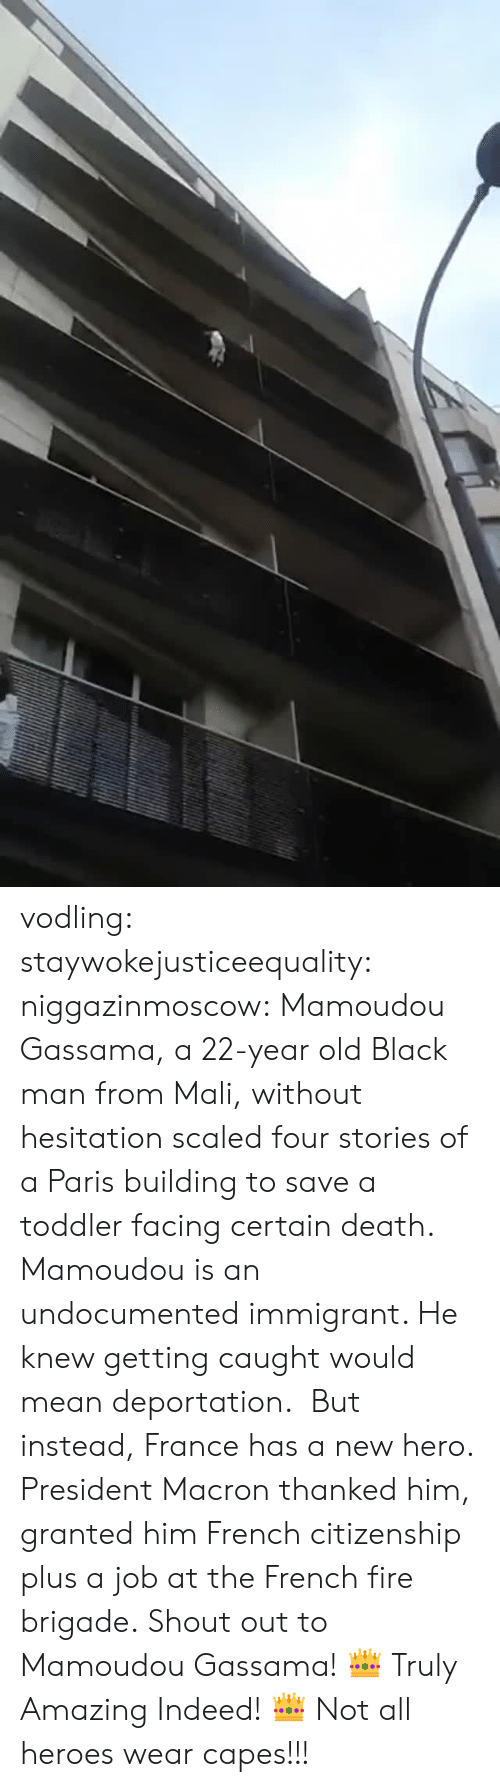 without hesitation: vodling:  staywokejusticeequality:  niggazinmoscow:  Mamoudou Gassama, a 22-year old Black man from Mali, without hesitation   scaled four stories of a Paris building to save a toddler facing certain death. Mamoudou is an undocumented immigrant. He knew getting caught would mean deportation. But instead, France has a new hero. President Macron thanked him, granted him French citizenship plus a job at the French fire brigade. Shout out to Mamoudou Gassama!    👑 Truly Amazing Indeed! 👑    Not all heroes wear capes!!!